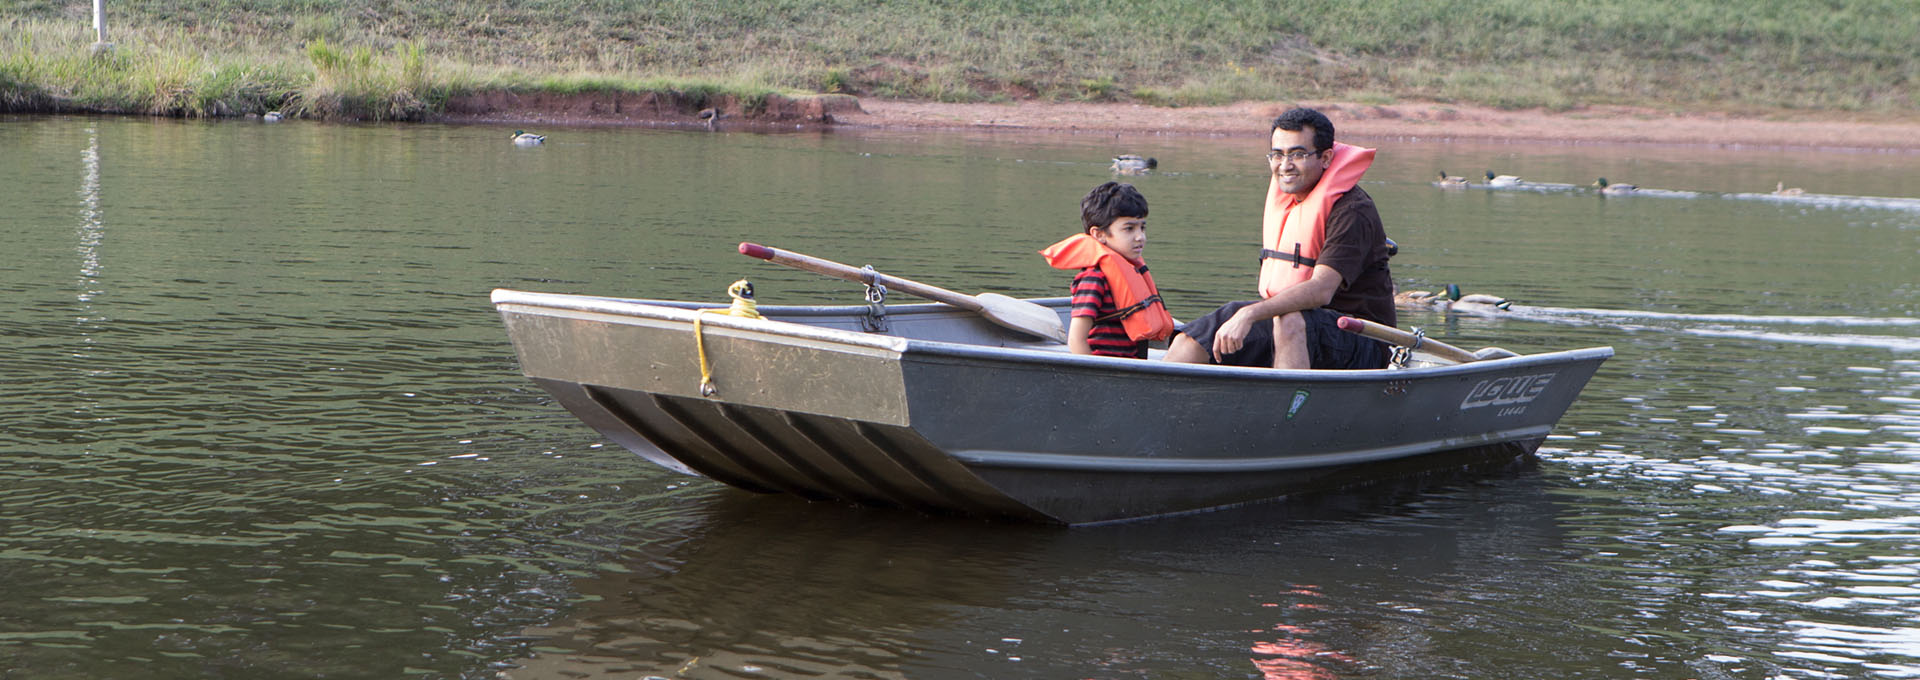 Father and child in a fishing boat